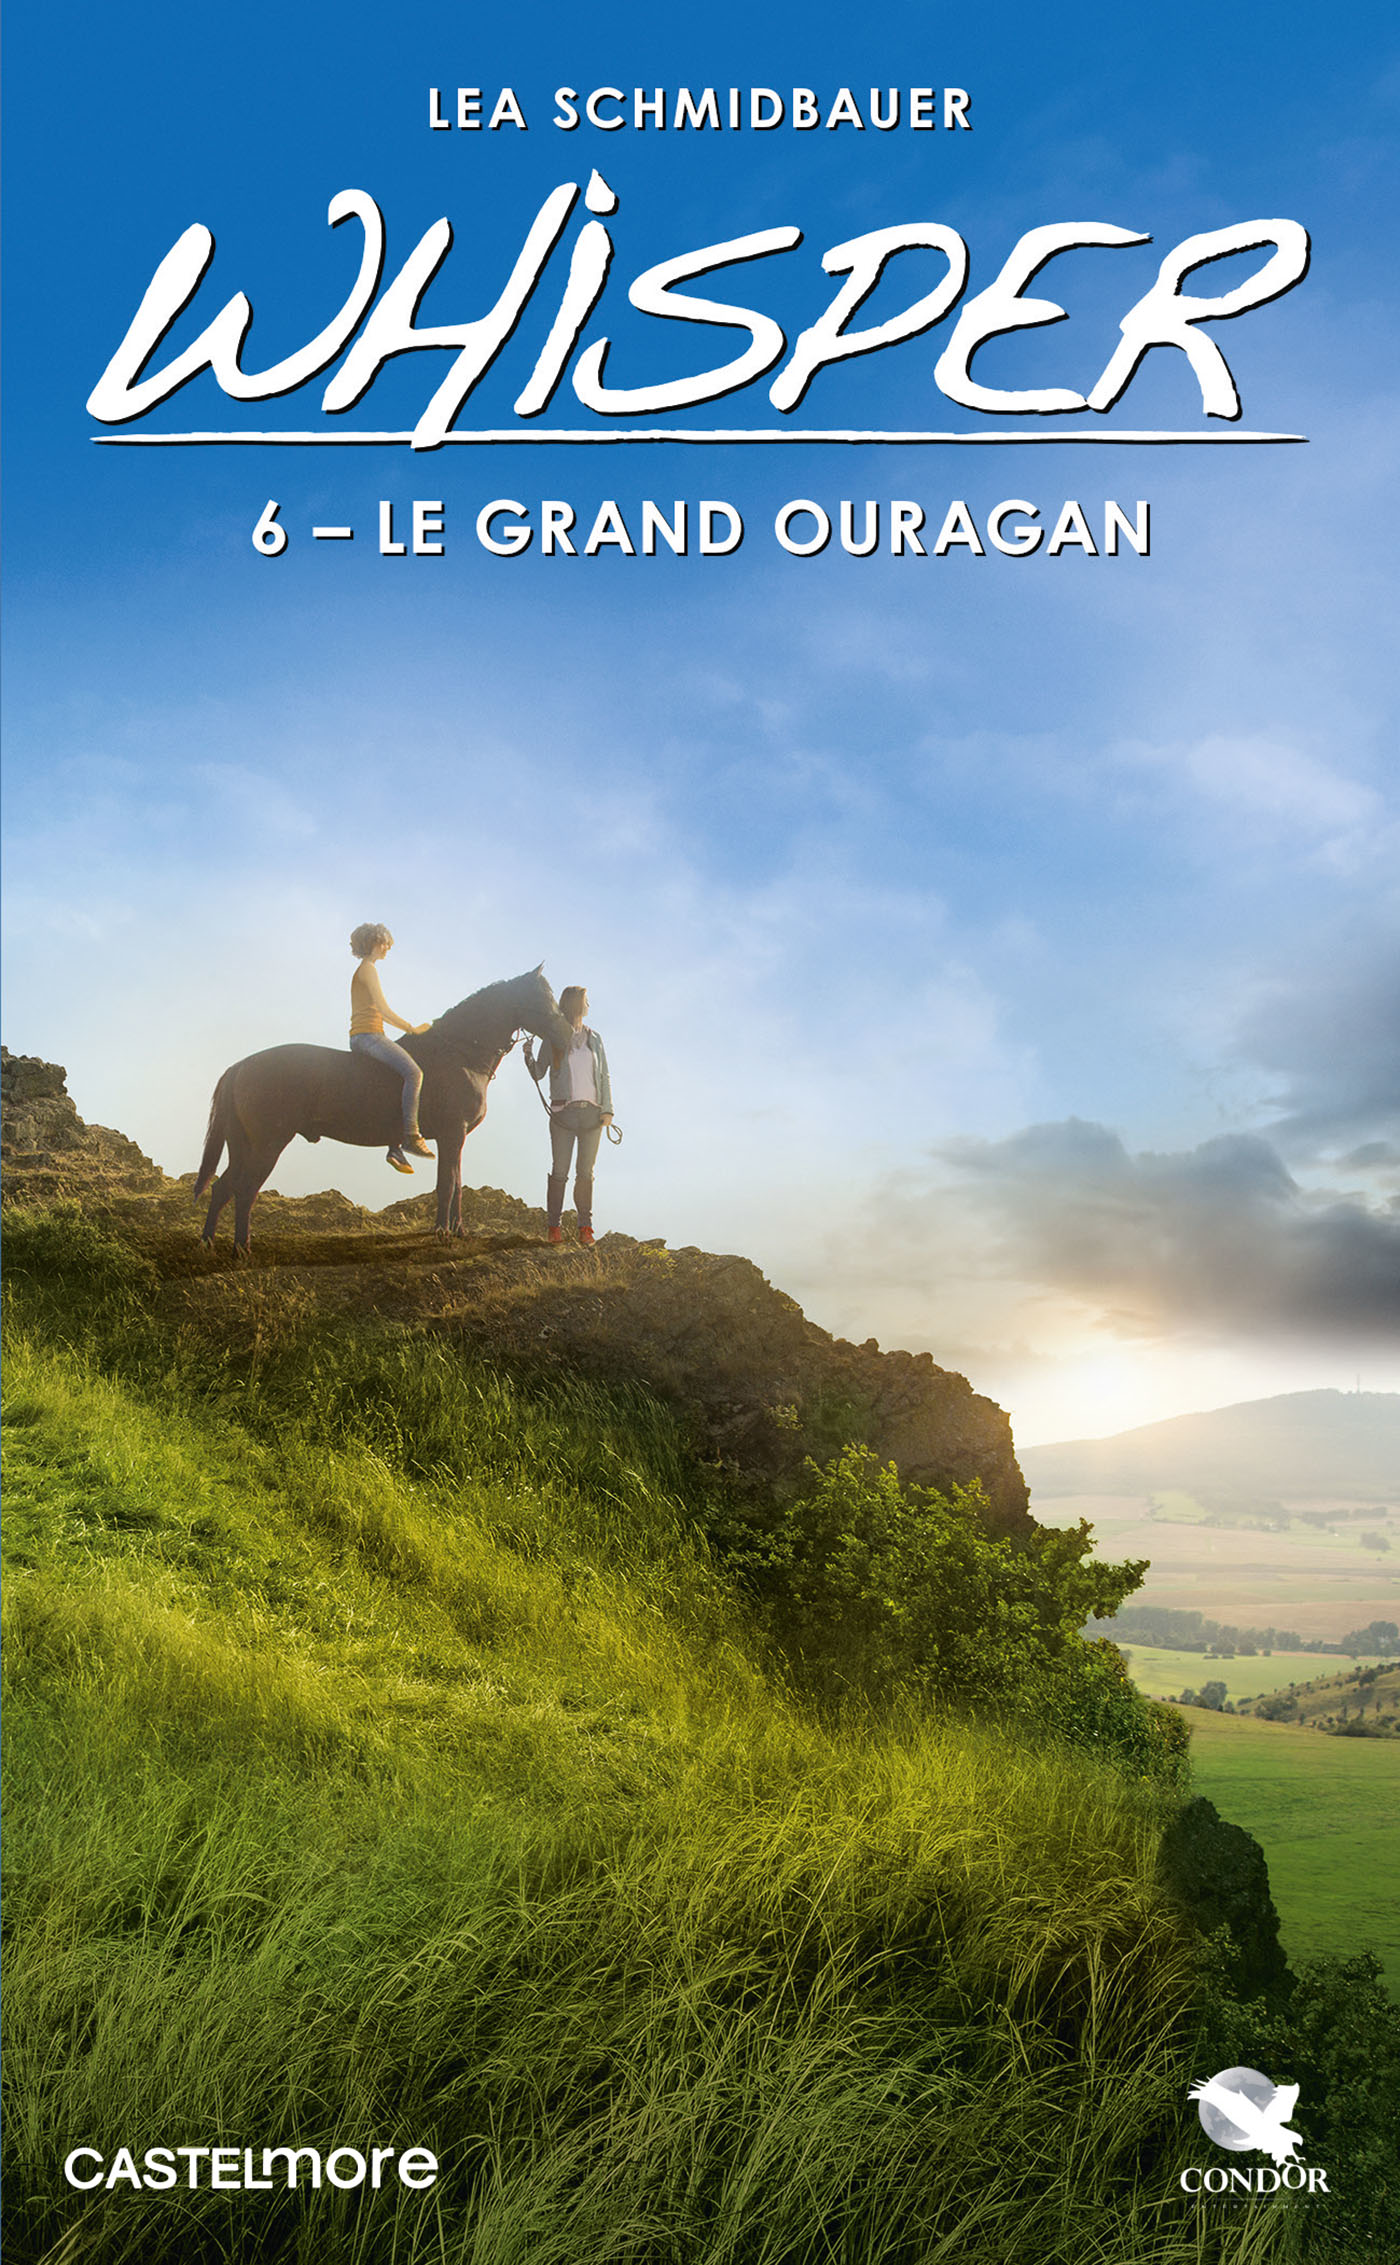 Le Grand Ouragan